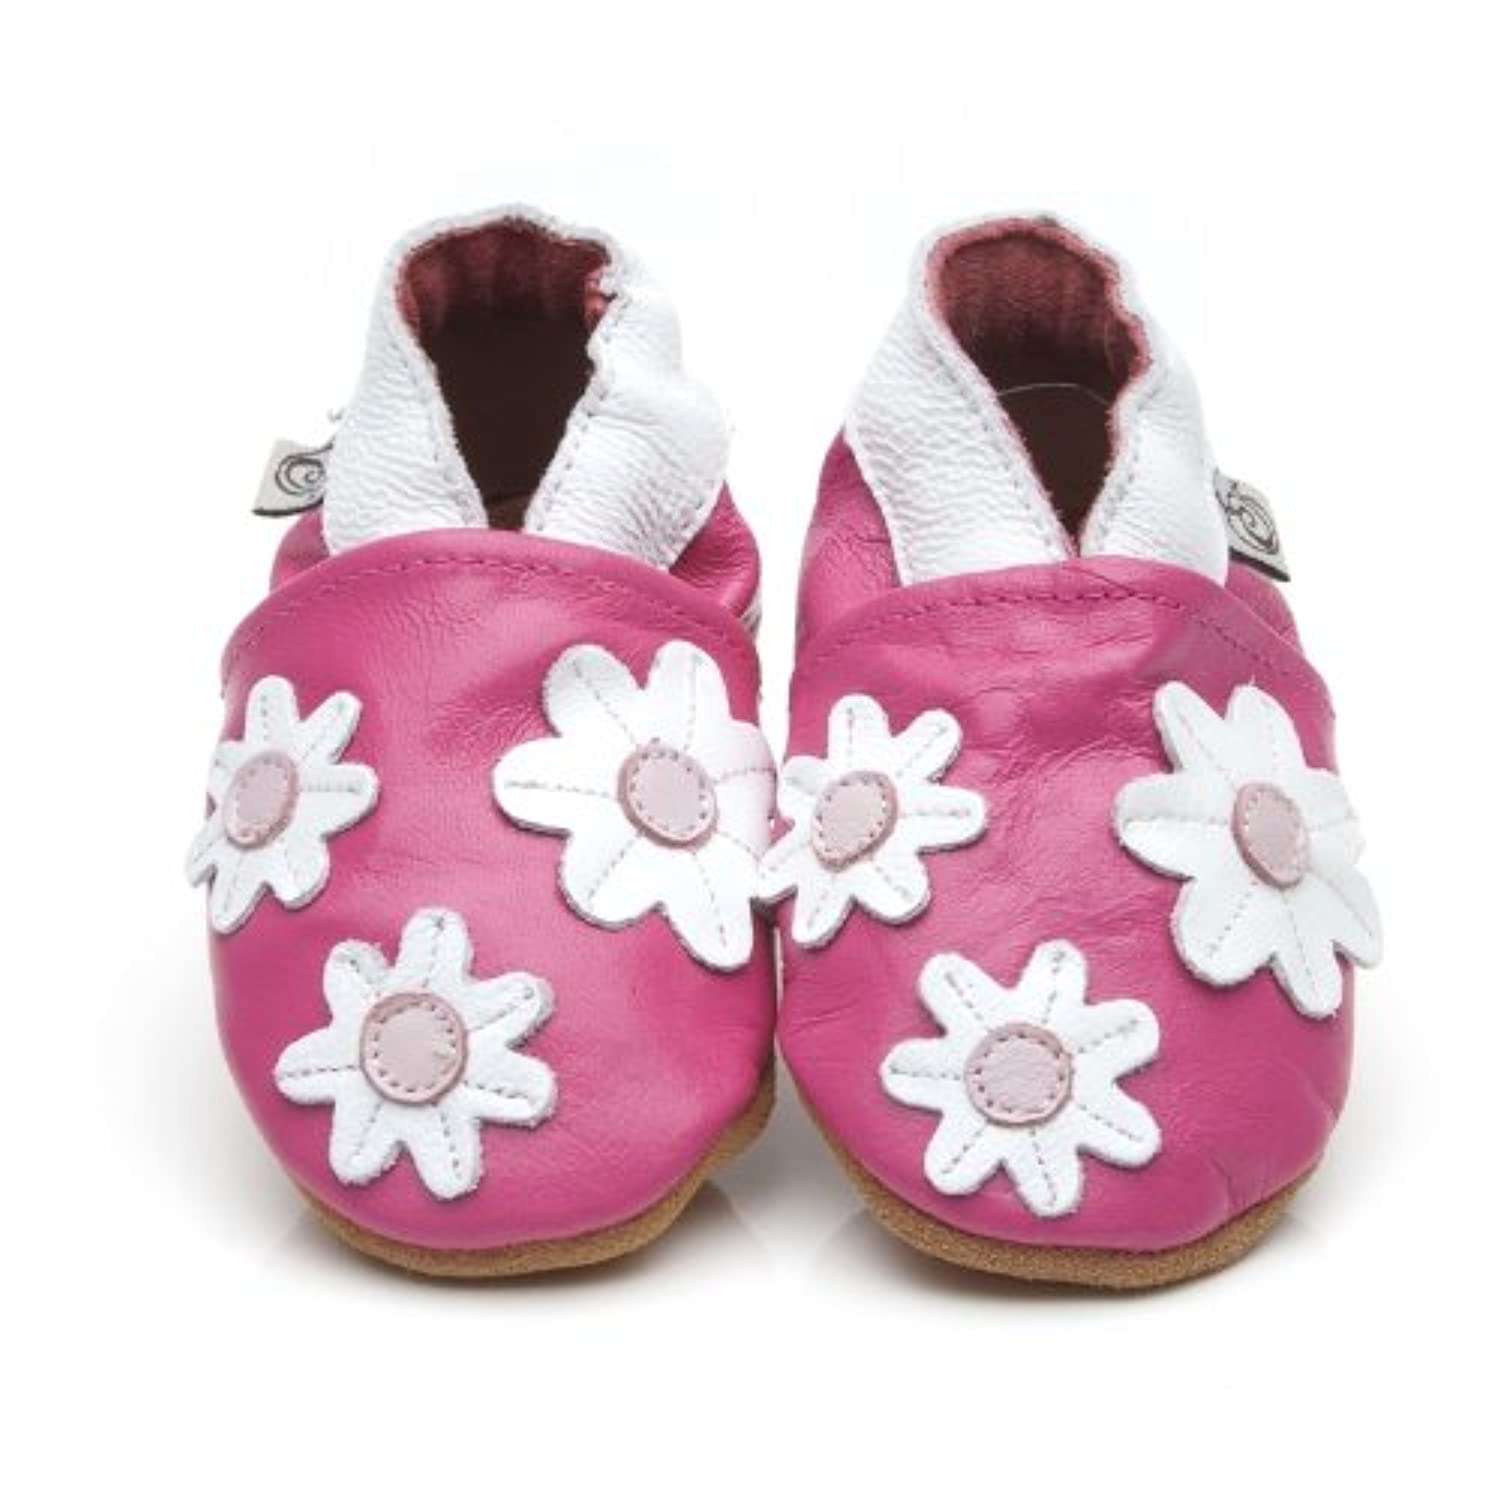 Soft Leather Baby Shoes Little Flowers Pink [ソフトレザーベビーシューズリトル花ピンク] 18-24 months (15 cm)